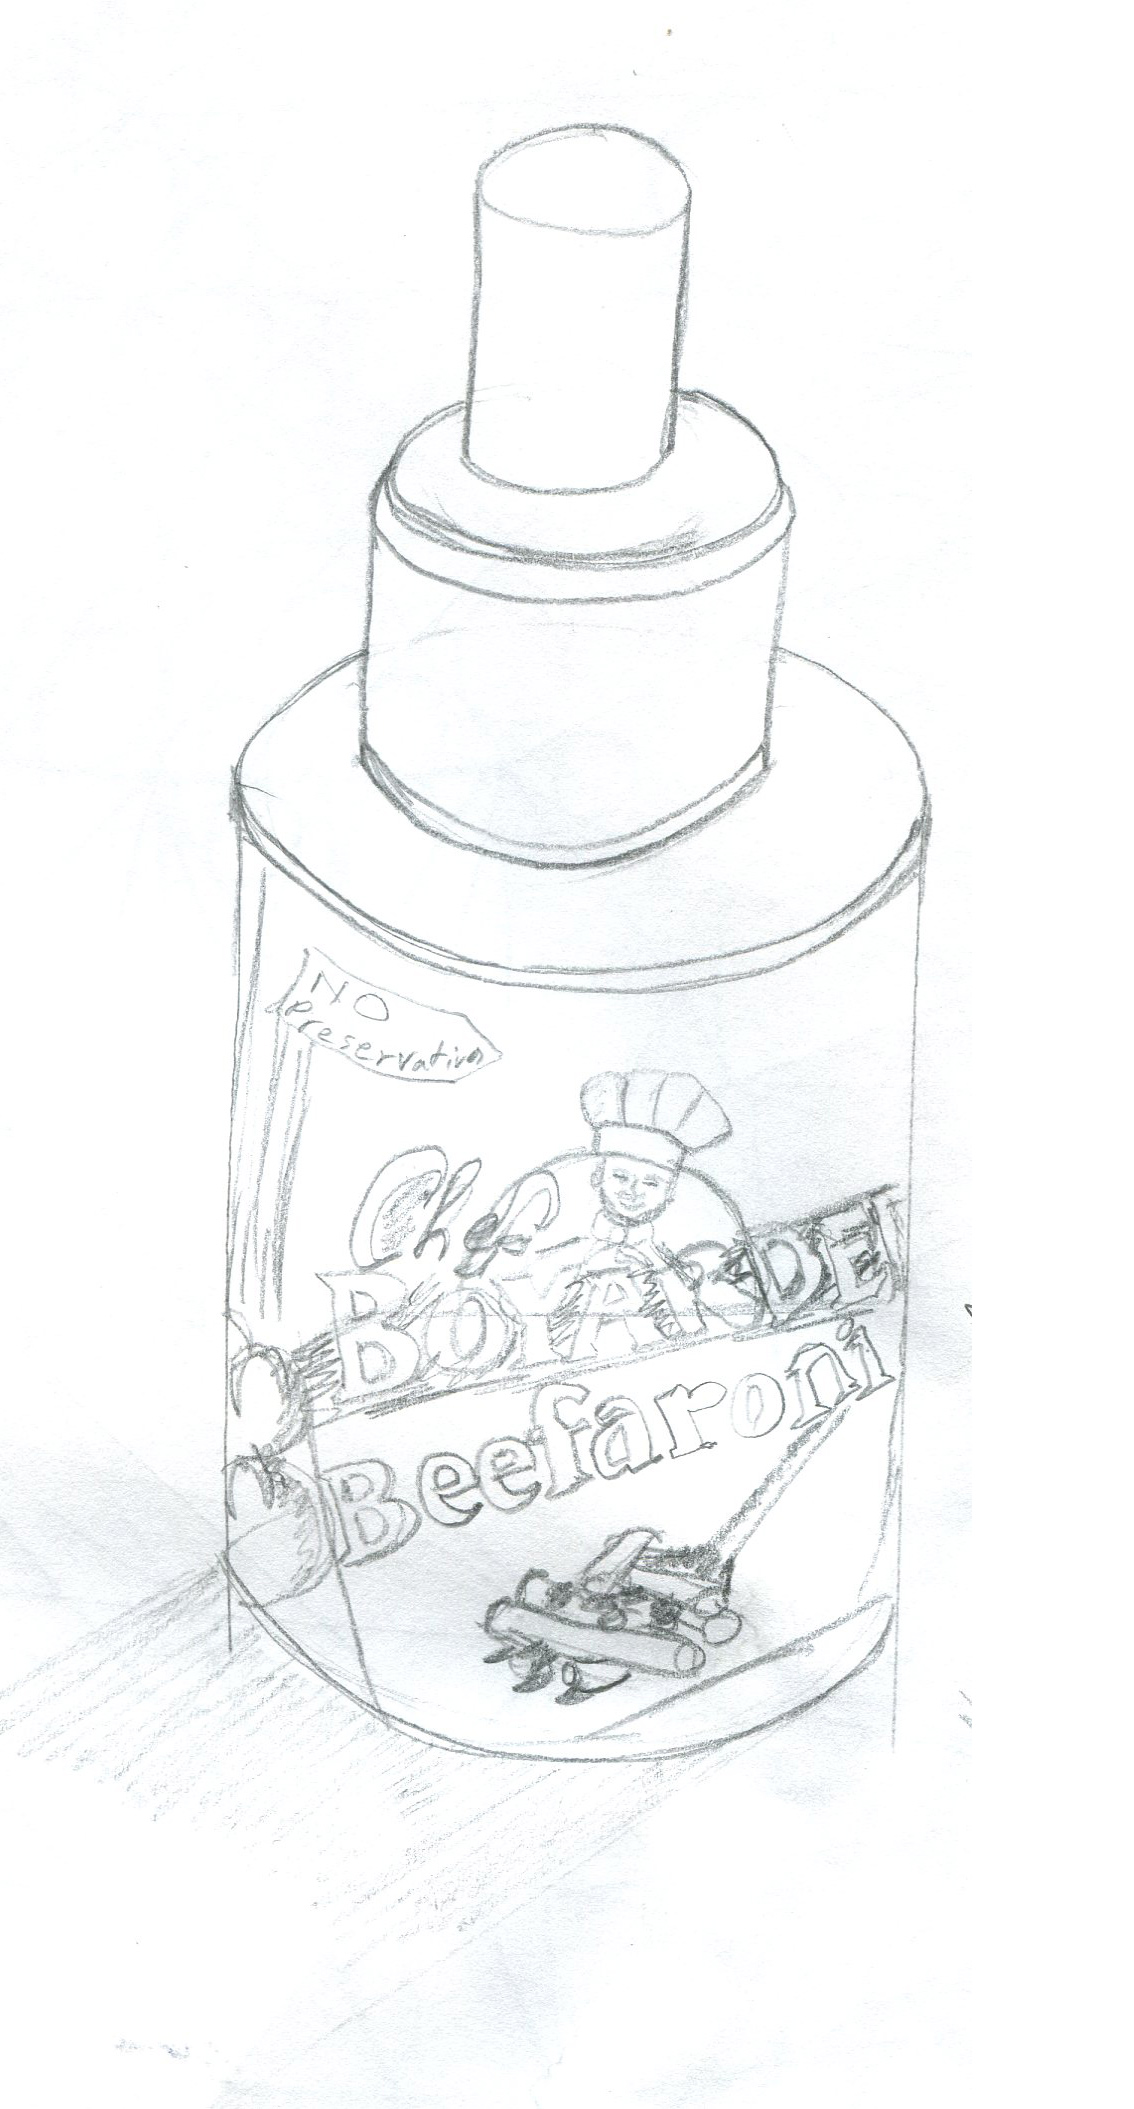 Day 10: First Attempt at drawing Canned goods.